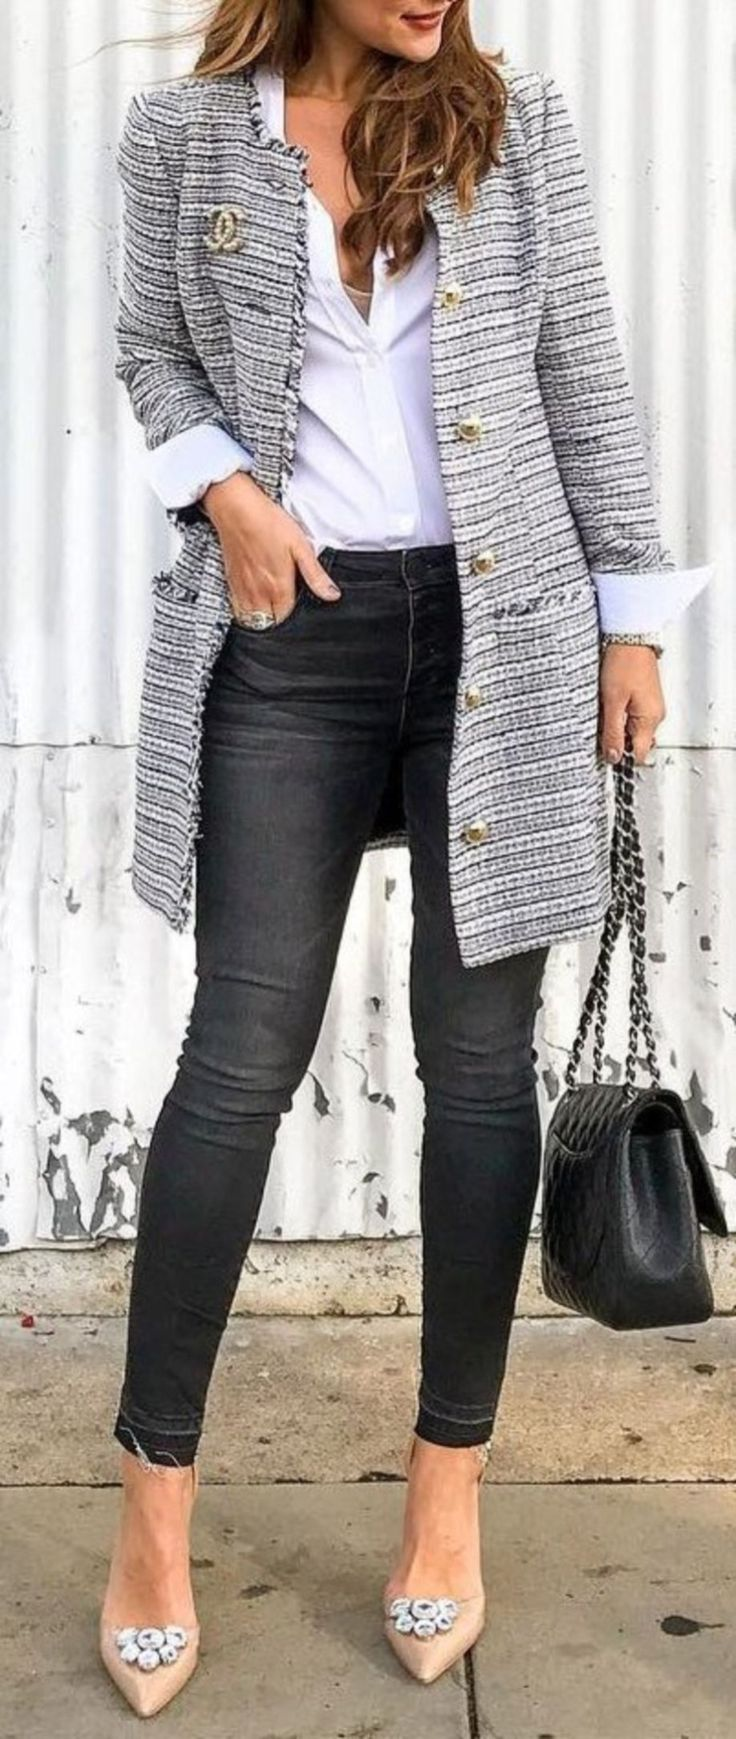 Trending winter outfits to copy right now 51 https://wfashionparadise.com/